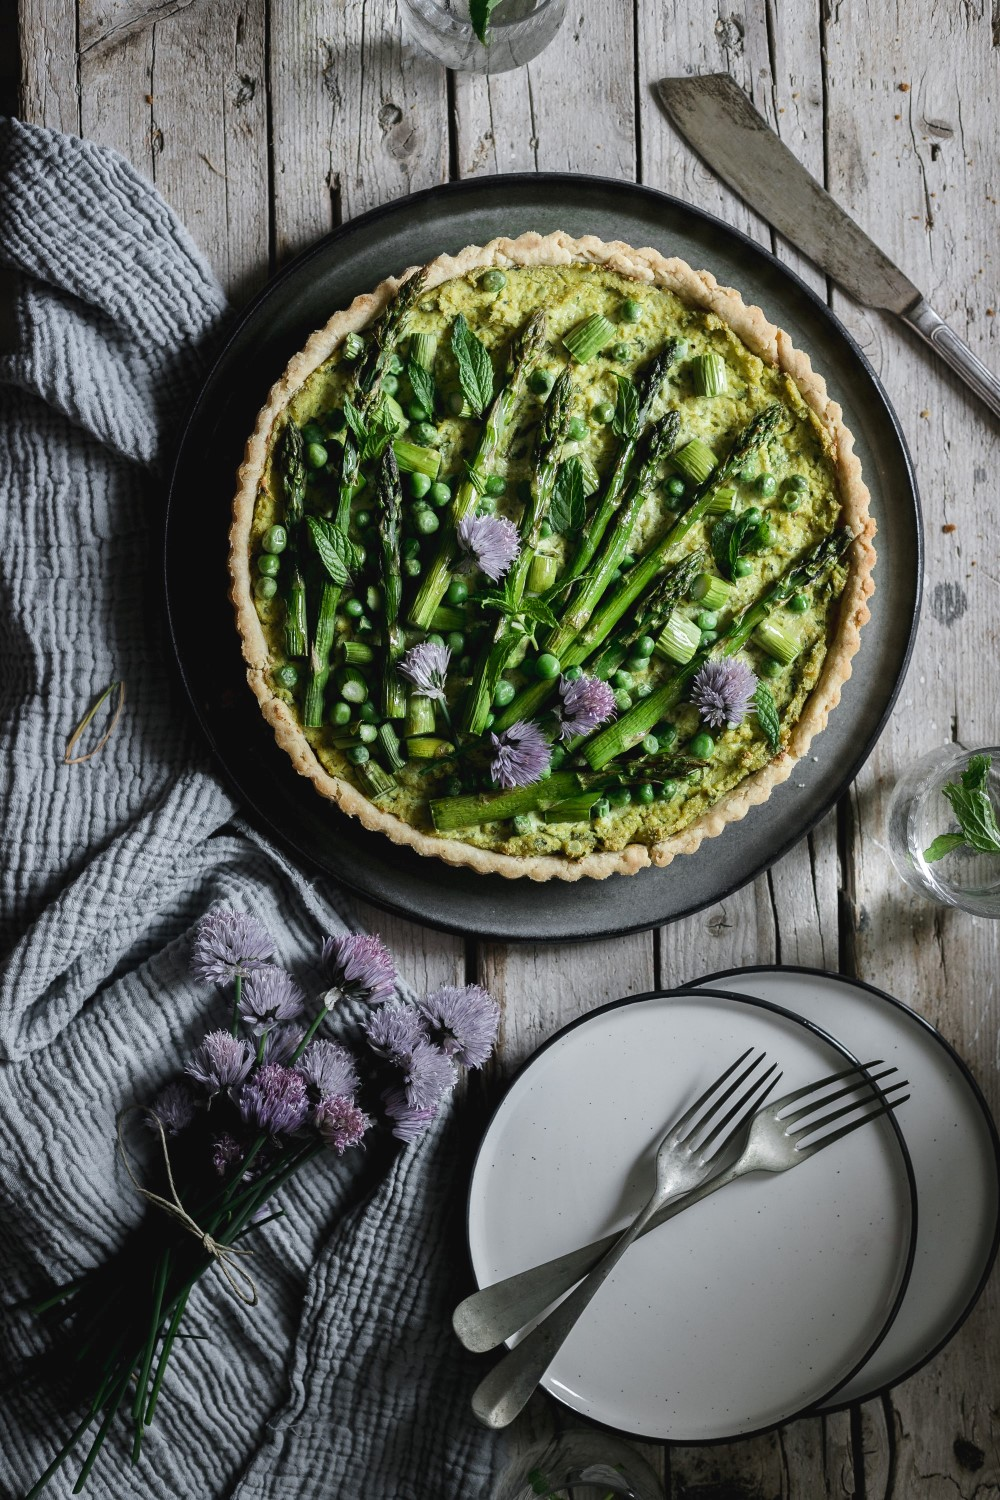 This simple vegan pea and asparagus quiche recipe is so easy to make and a great way to treat your guests!